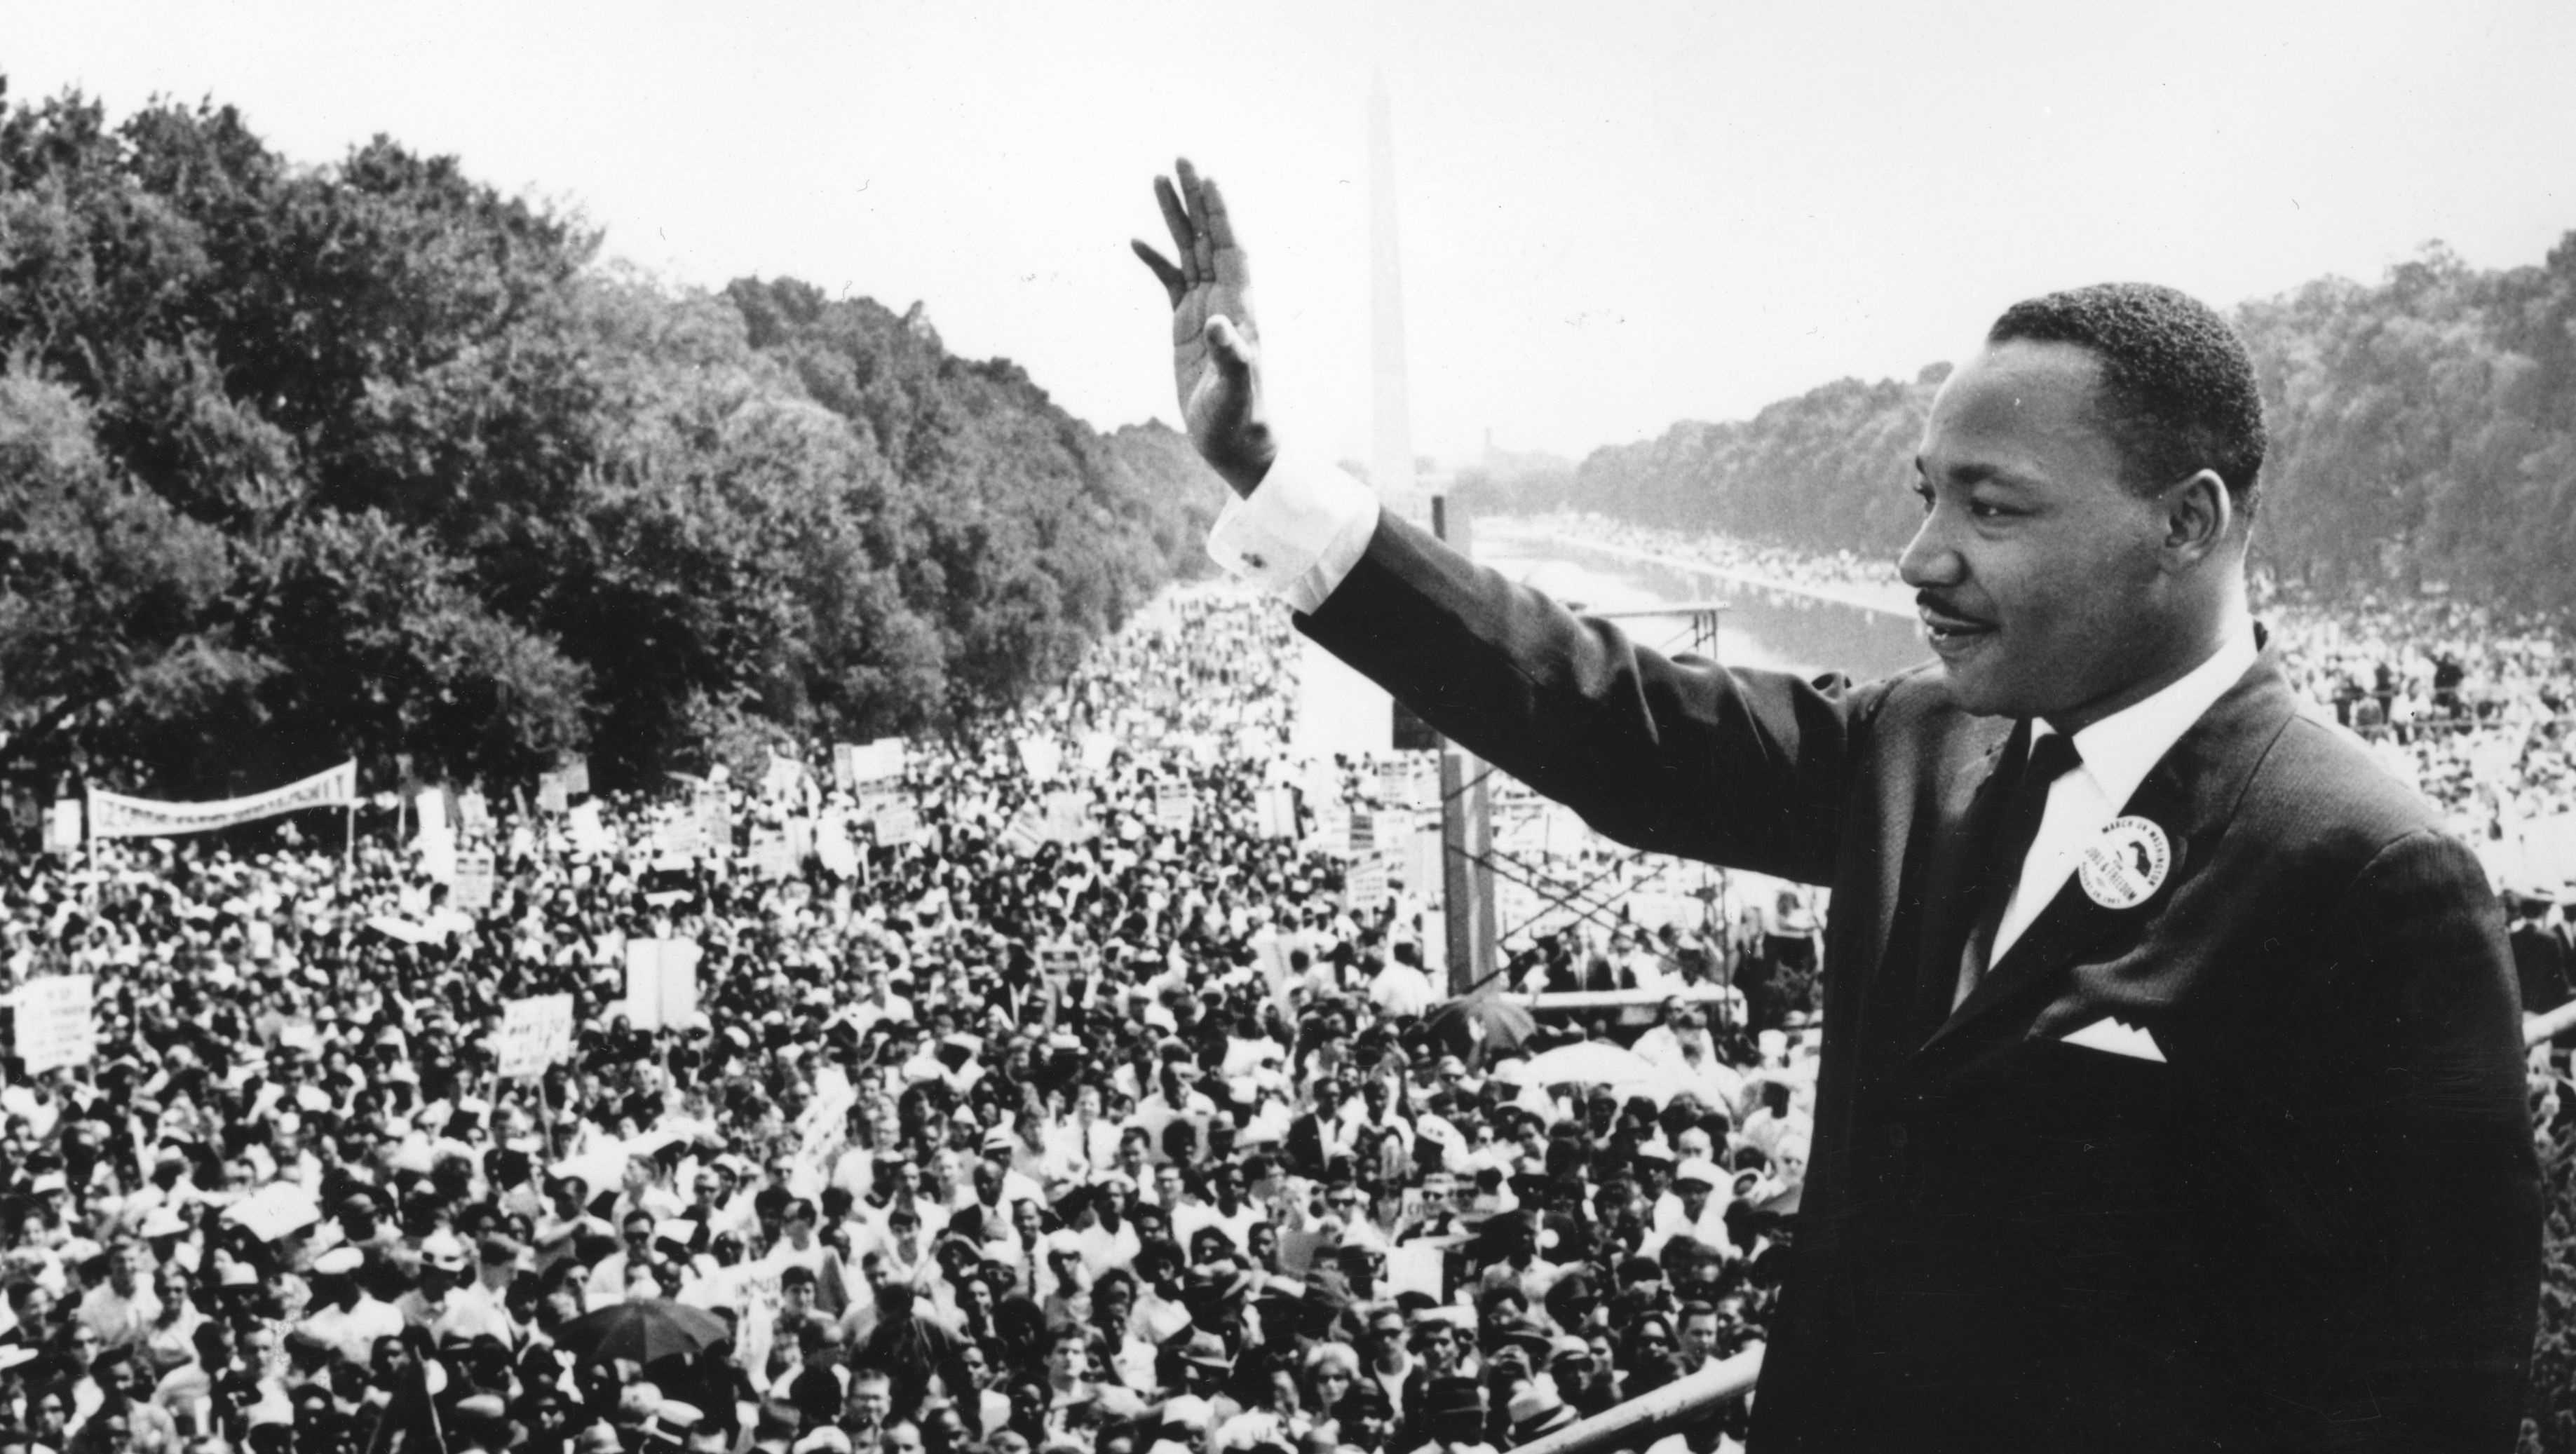 Civil rights leader Martin Luther King Jr. addresses crowds during the March On Washington at the Lincoln Memorial, Washington DC, where he gave his 'I Have A Dream' speech.